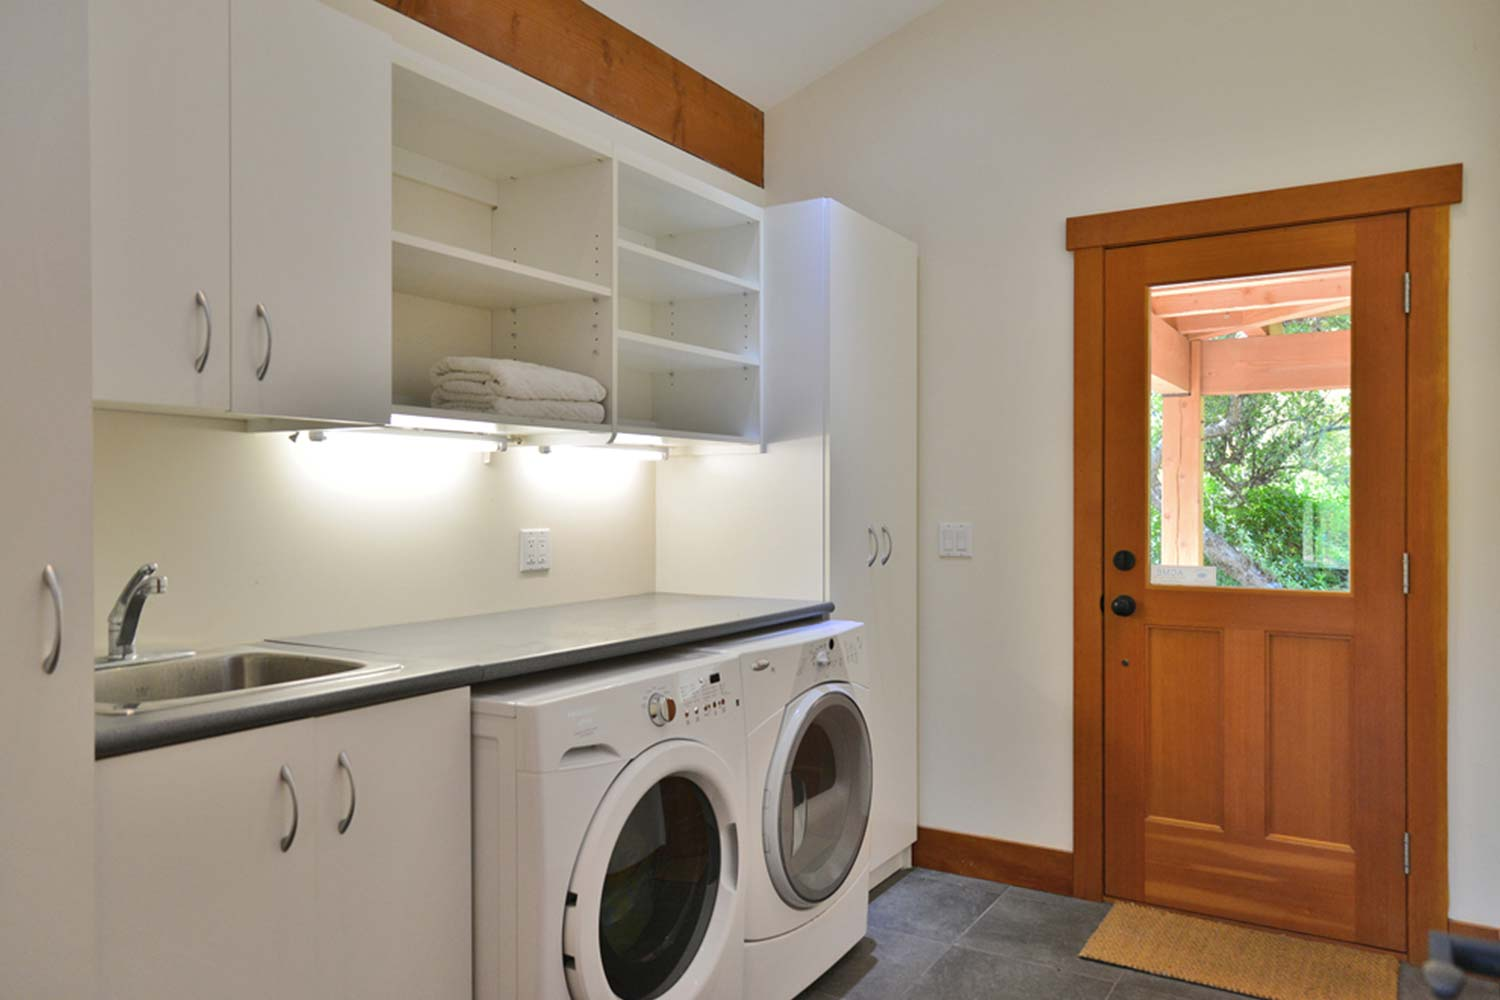 The laundry room at House 65 has a washer & dryer. Laundry soap is included when you stay at this high-end rental home.